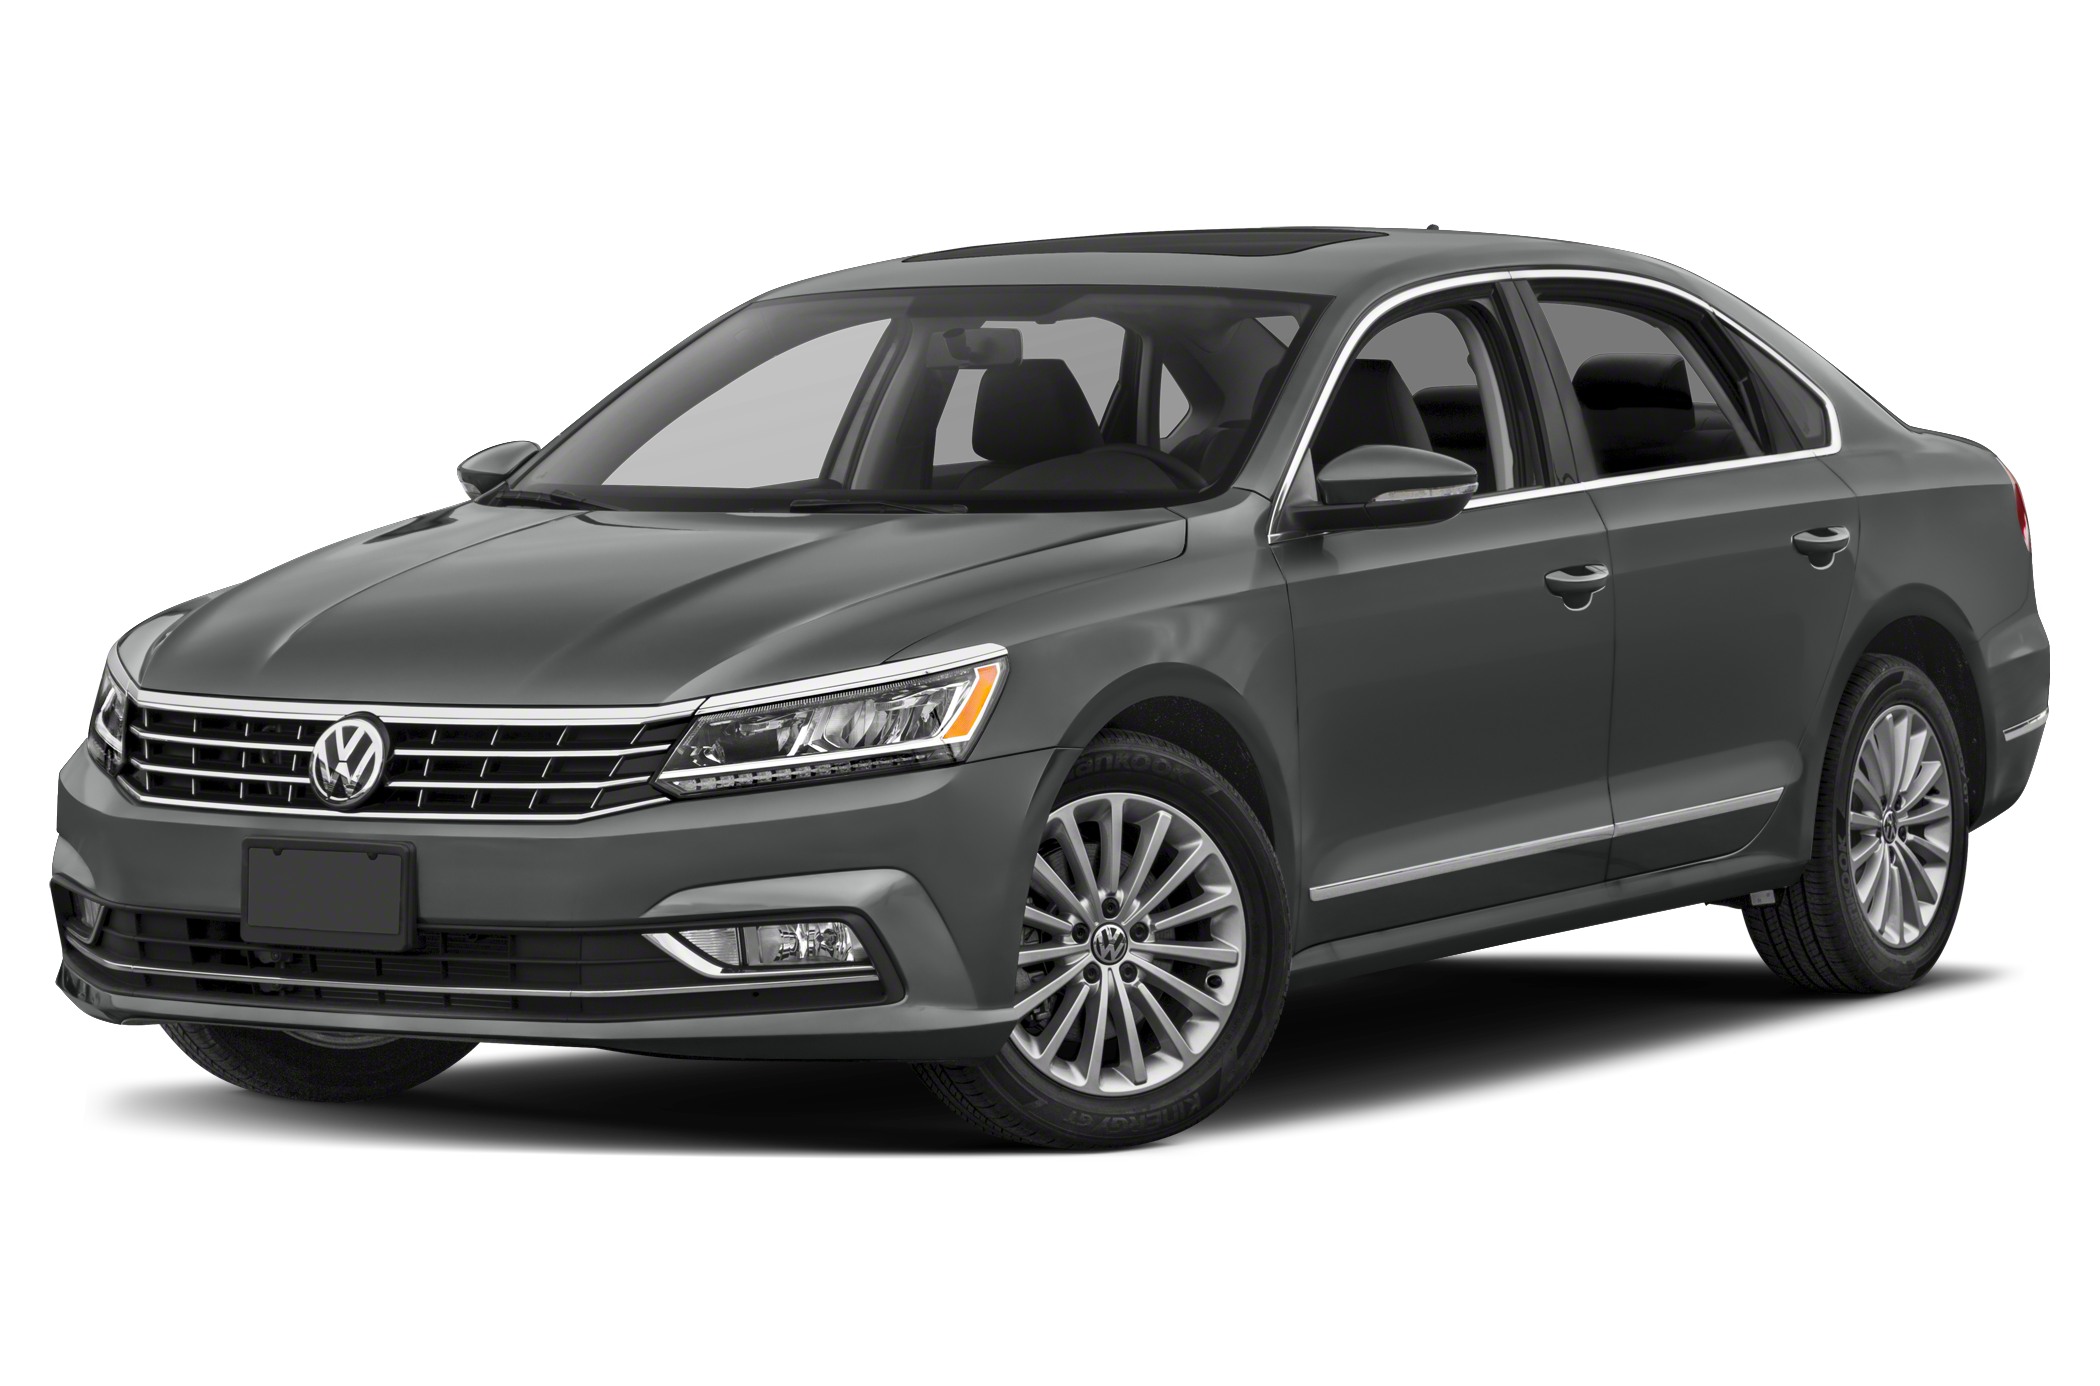 pare Volkswagen Passat to Ford Fusion